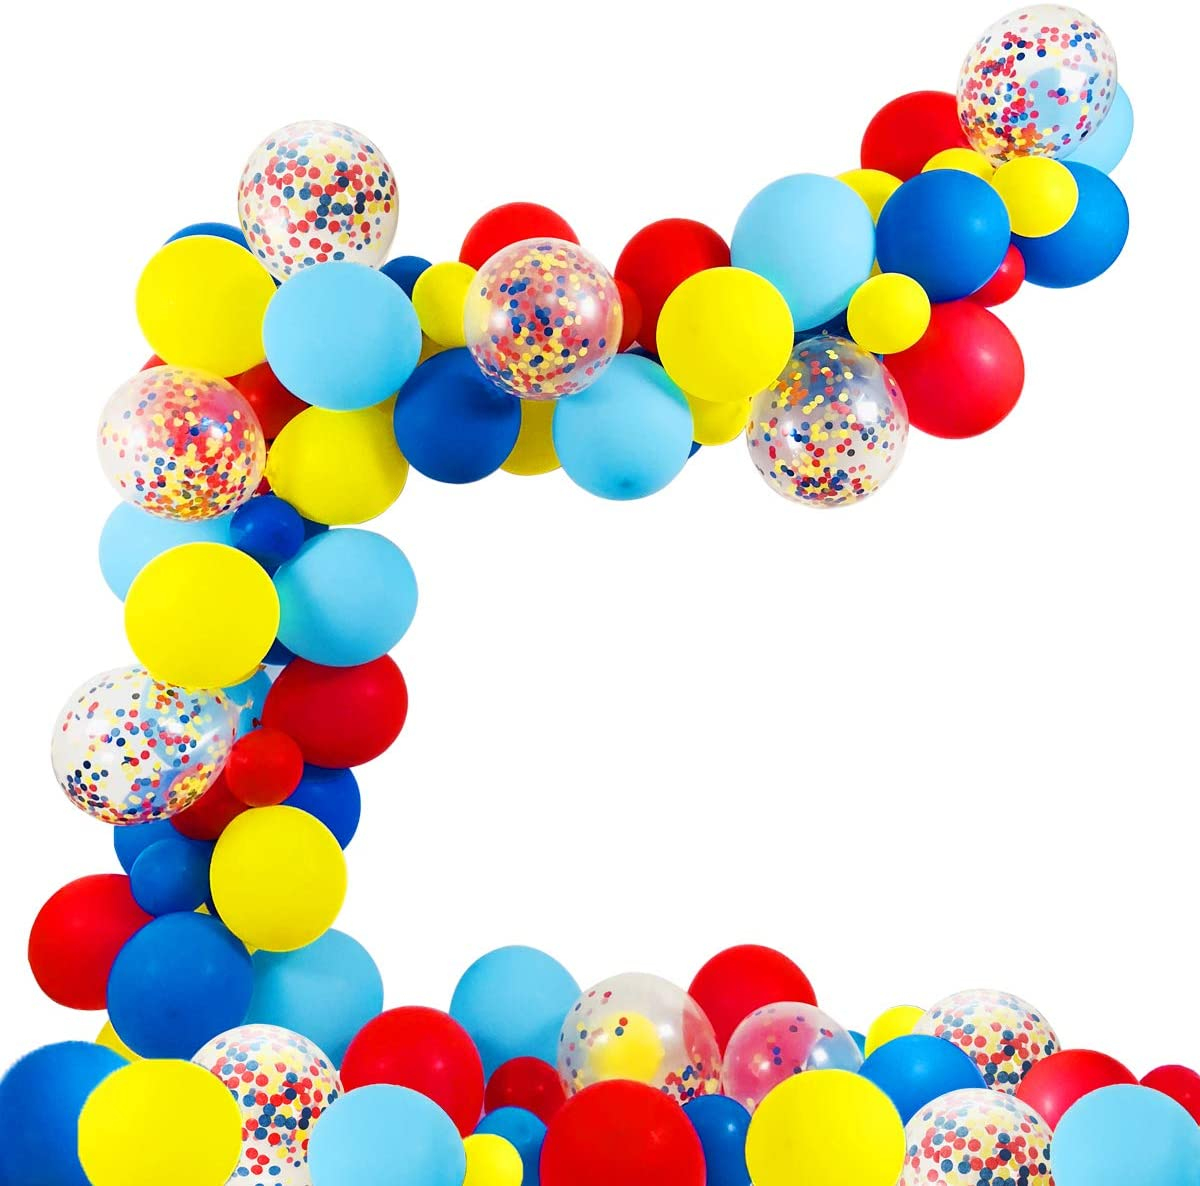 About To Pop Baby Shower Confetti Balloons Pink Party Decorations